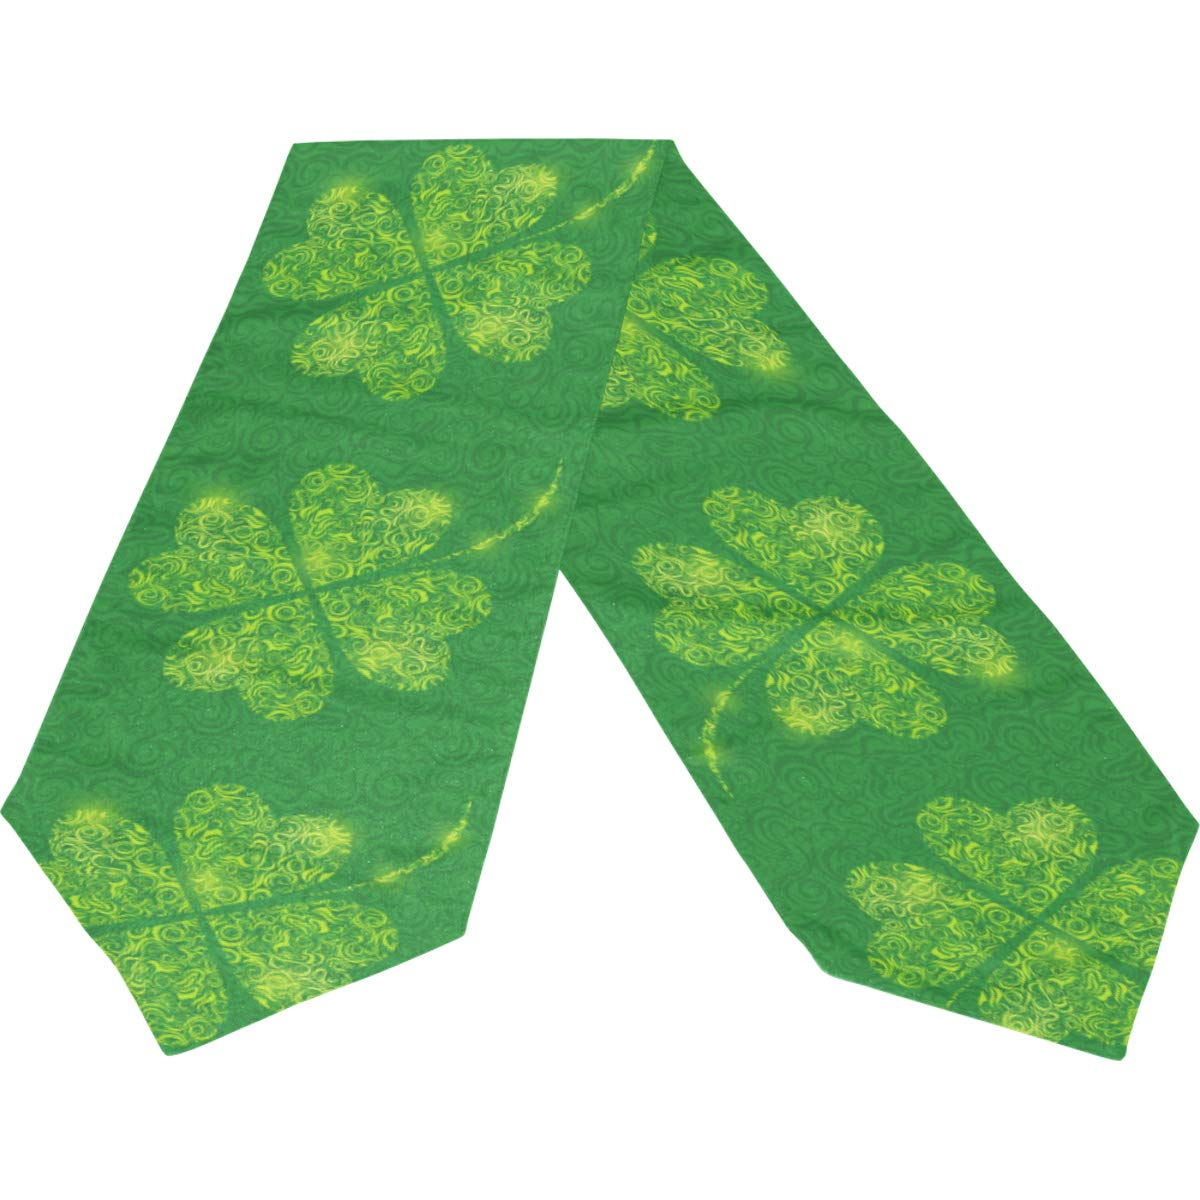 Lucky Patrick Shamrock Clover Long Table Runner Cloth 13x90 Inch, Table Runner Placemat for Kitchen Dining Wedding Home Decor Gift Housewarming